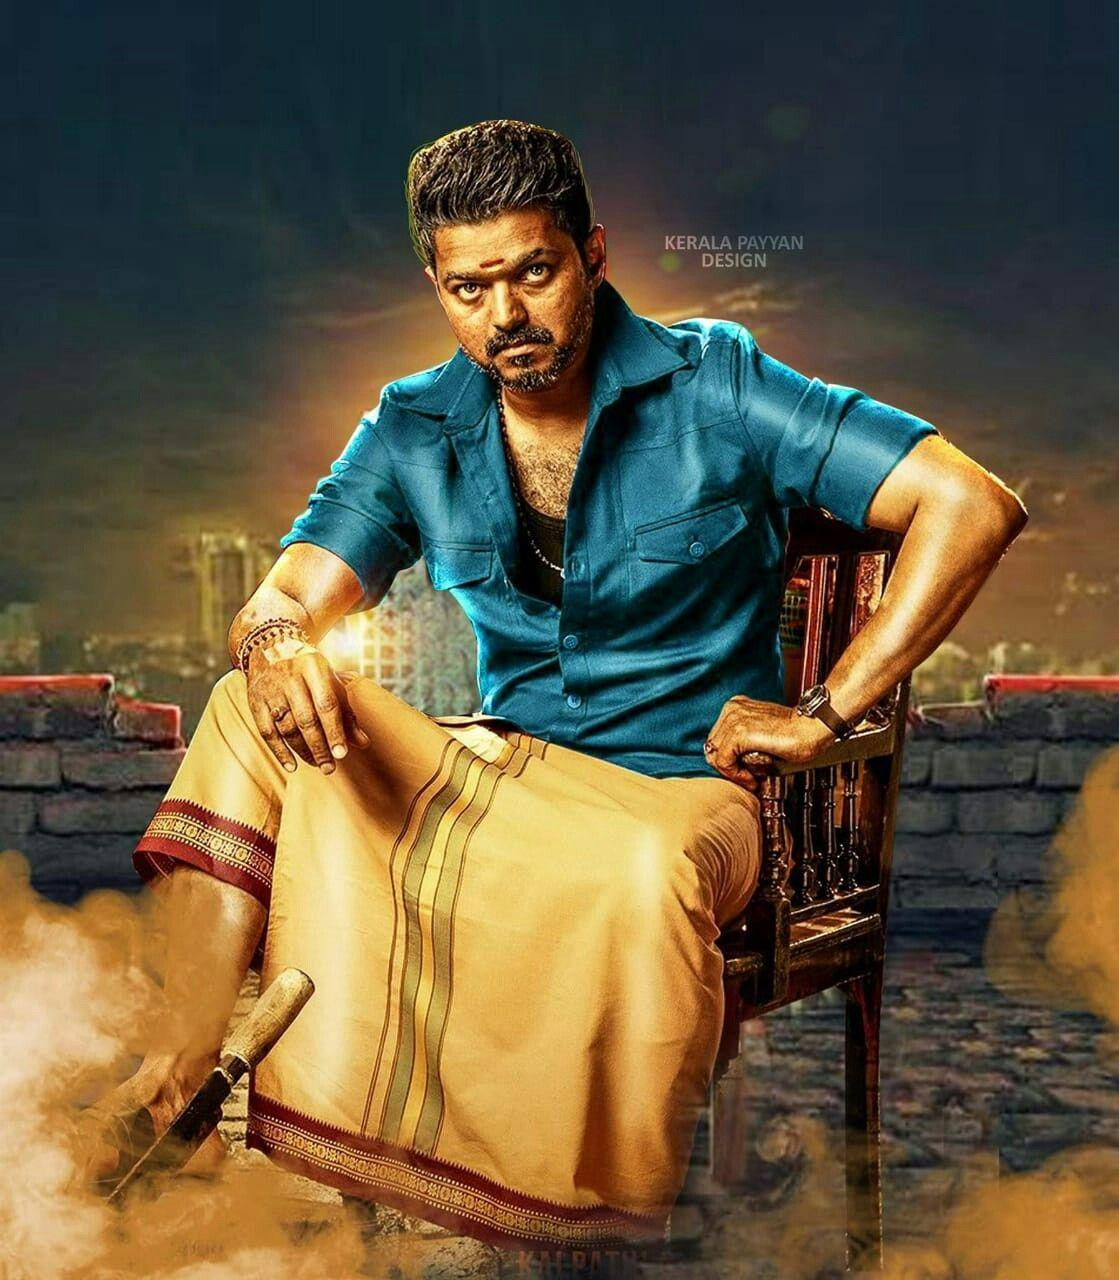 Vijay 4k Hd Mobile Wallpapers Wallpaper Cave Use them as wallpapers for your mobile or desktop screens. vijay 4k hd mobile wallpapers